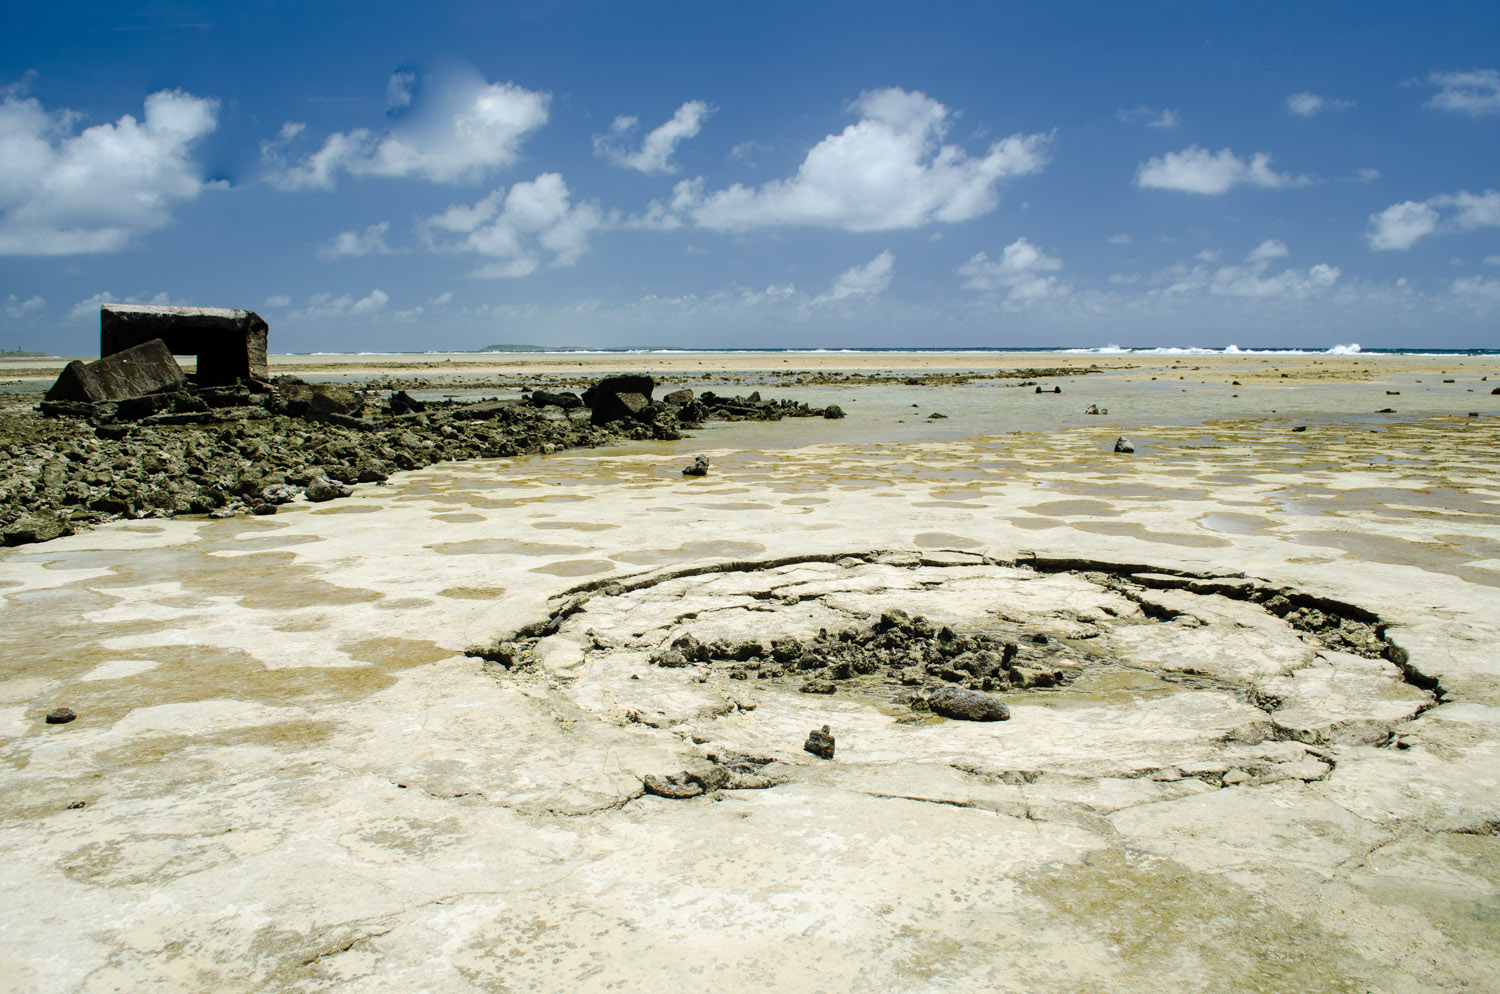 Low tide exposes this crater beside the remains of a bunker